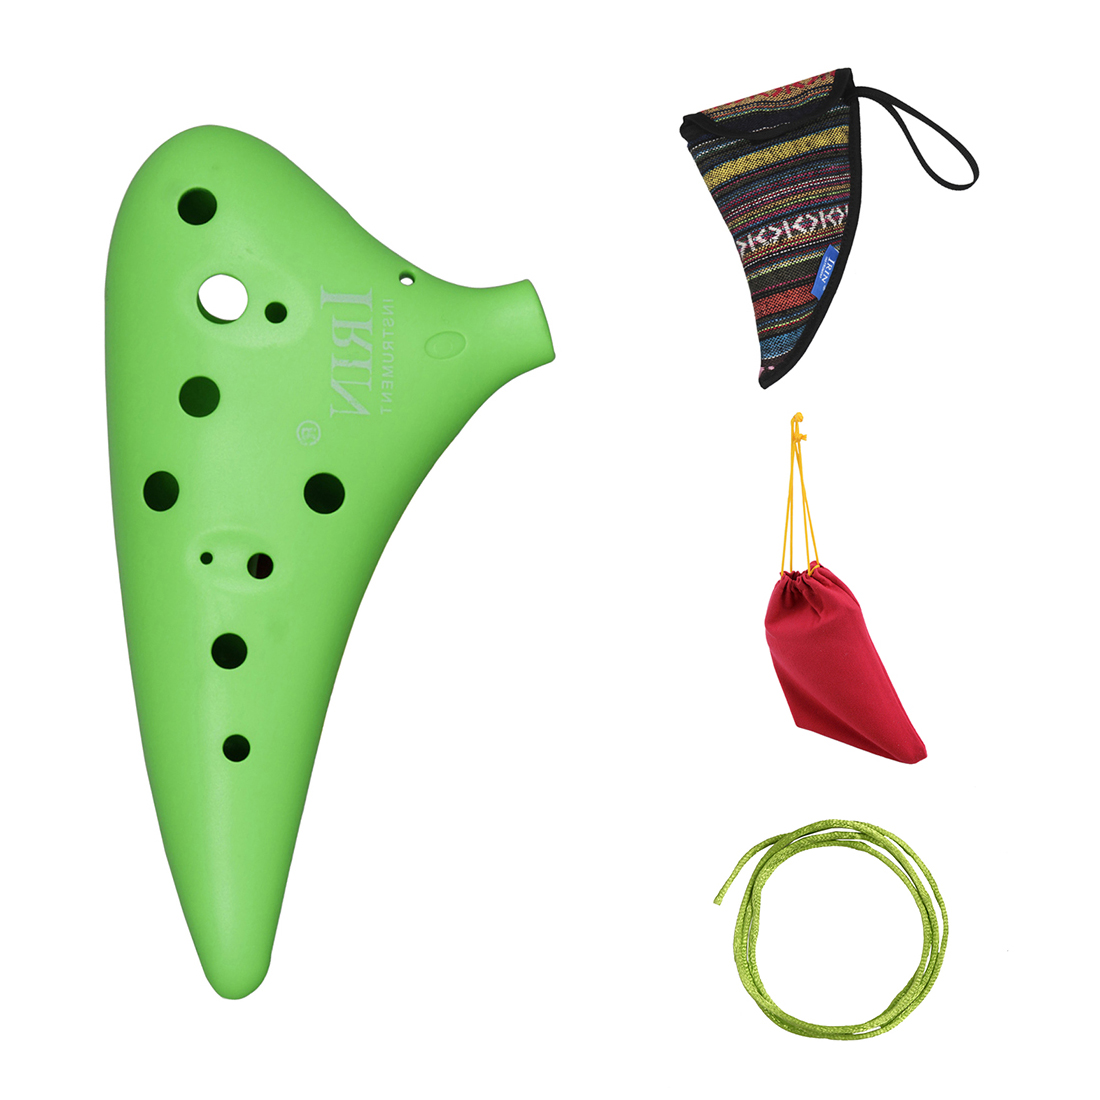 IRIN 12 High Hole C Ocarina Flute Vessel Material ABS Sweet Potato Shape With 2 Protection Bags Wind Instrument Gift For Begin